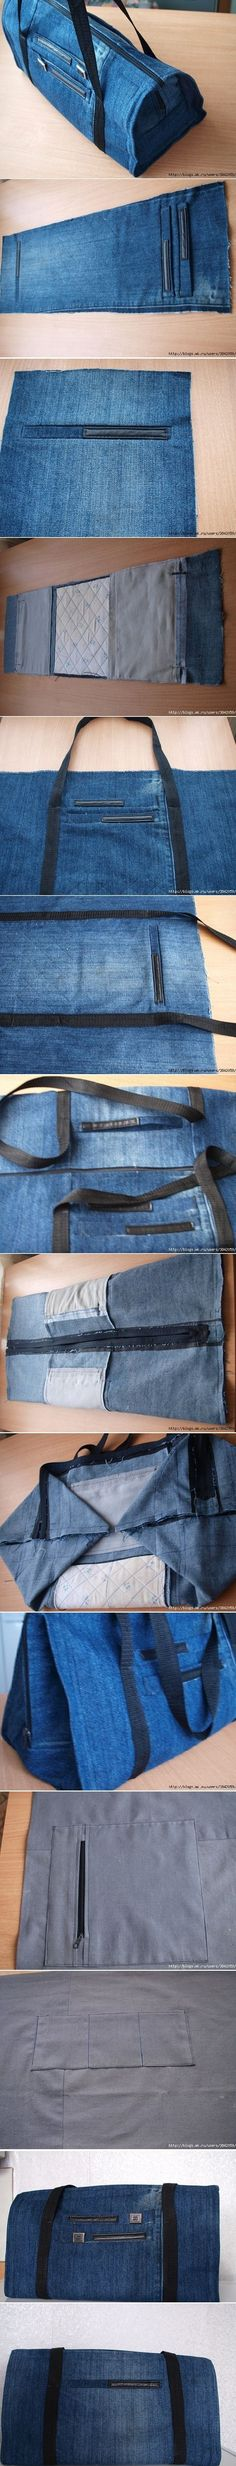 DIY Handbag Jeans         ~          GOODIY